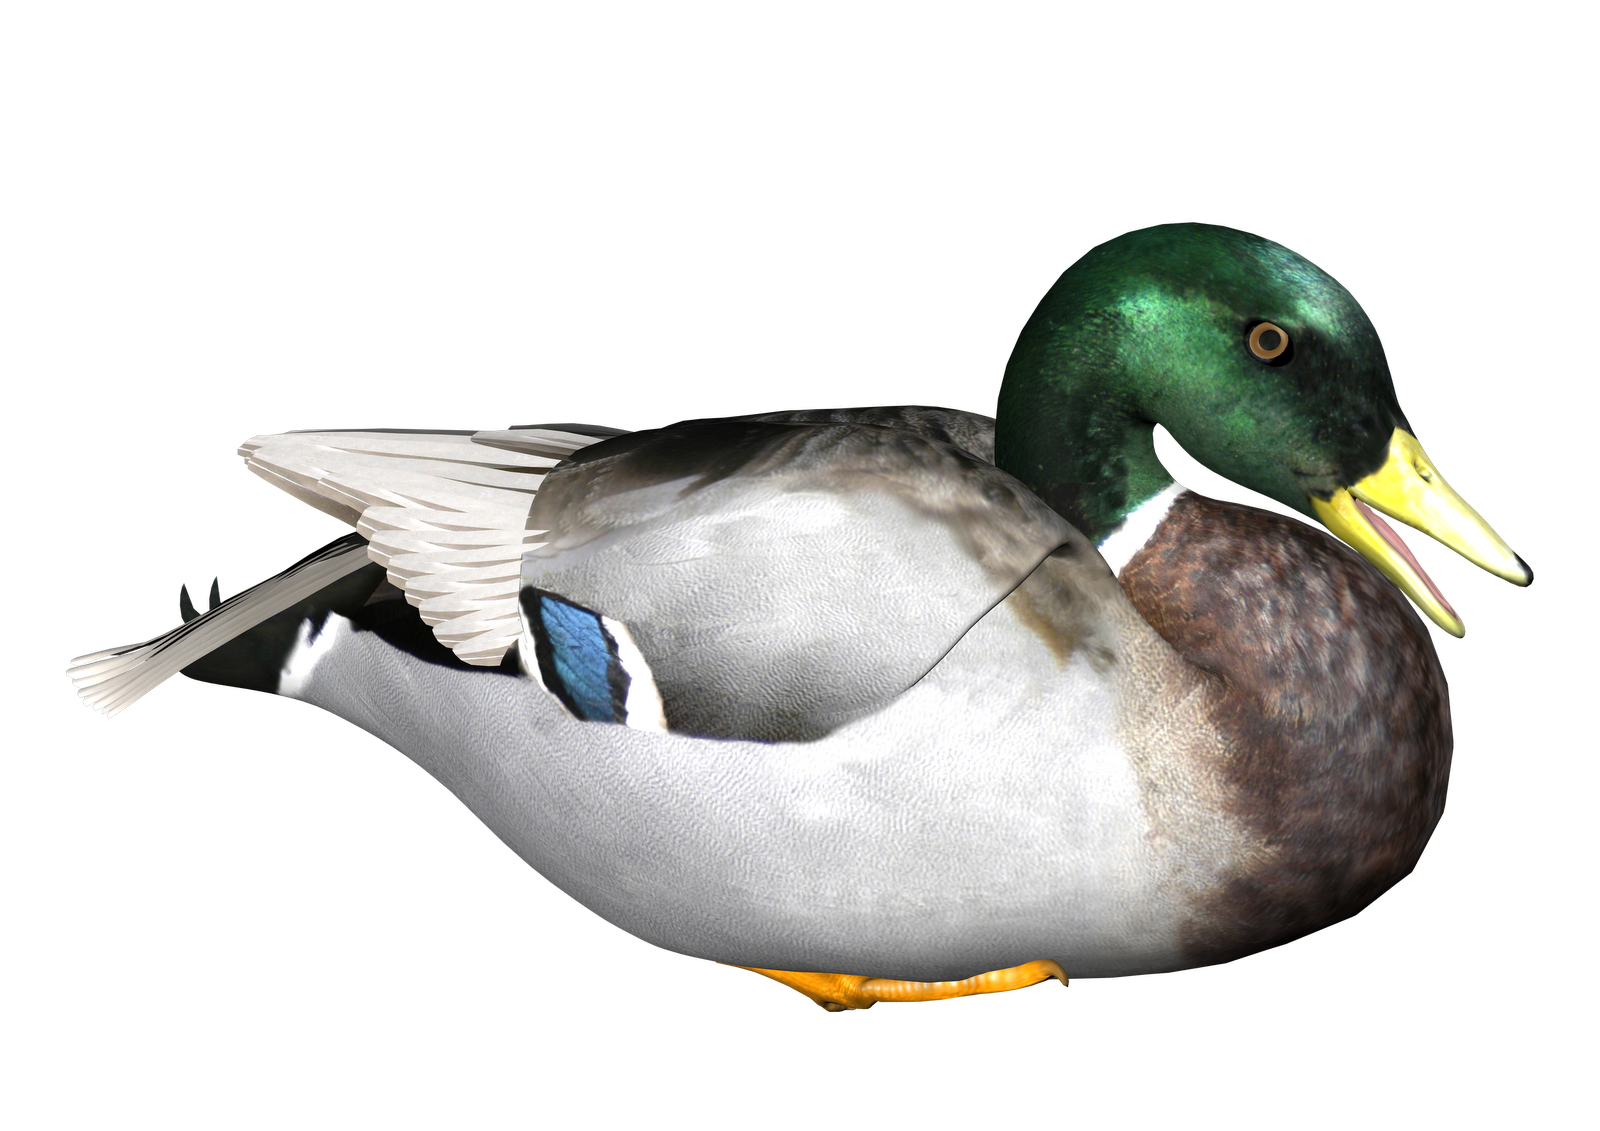 Pond transparent duck. Background png mart